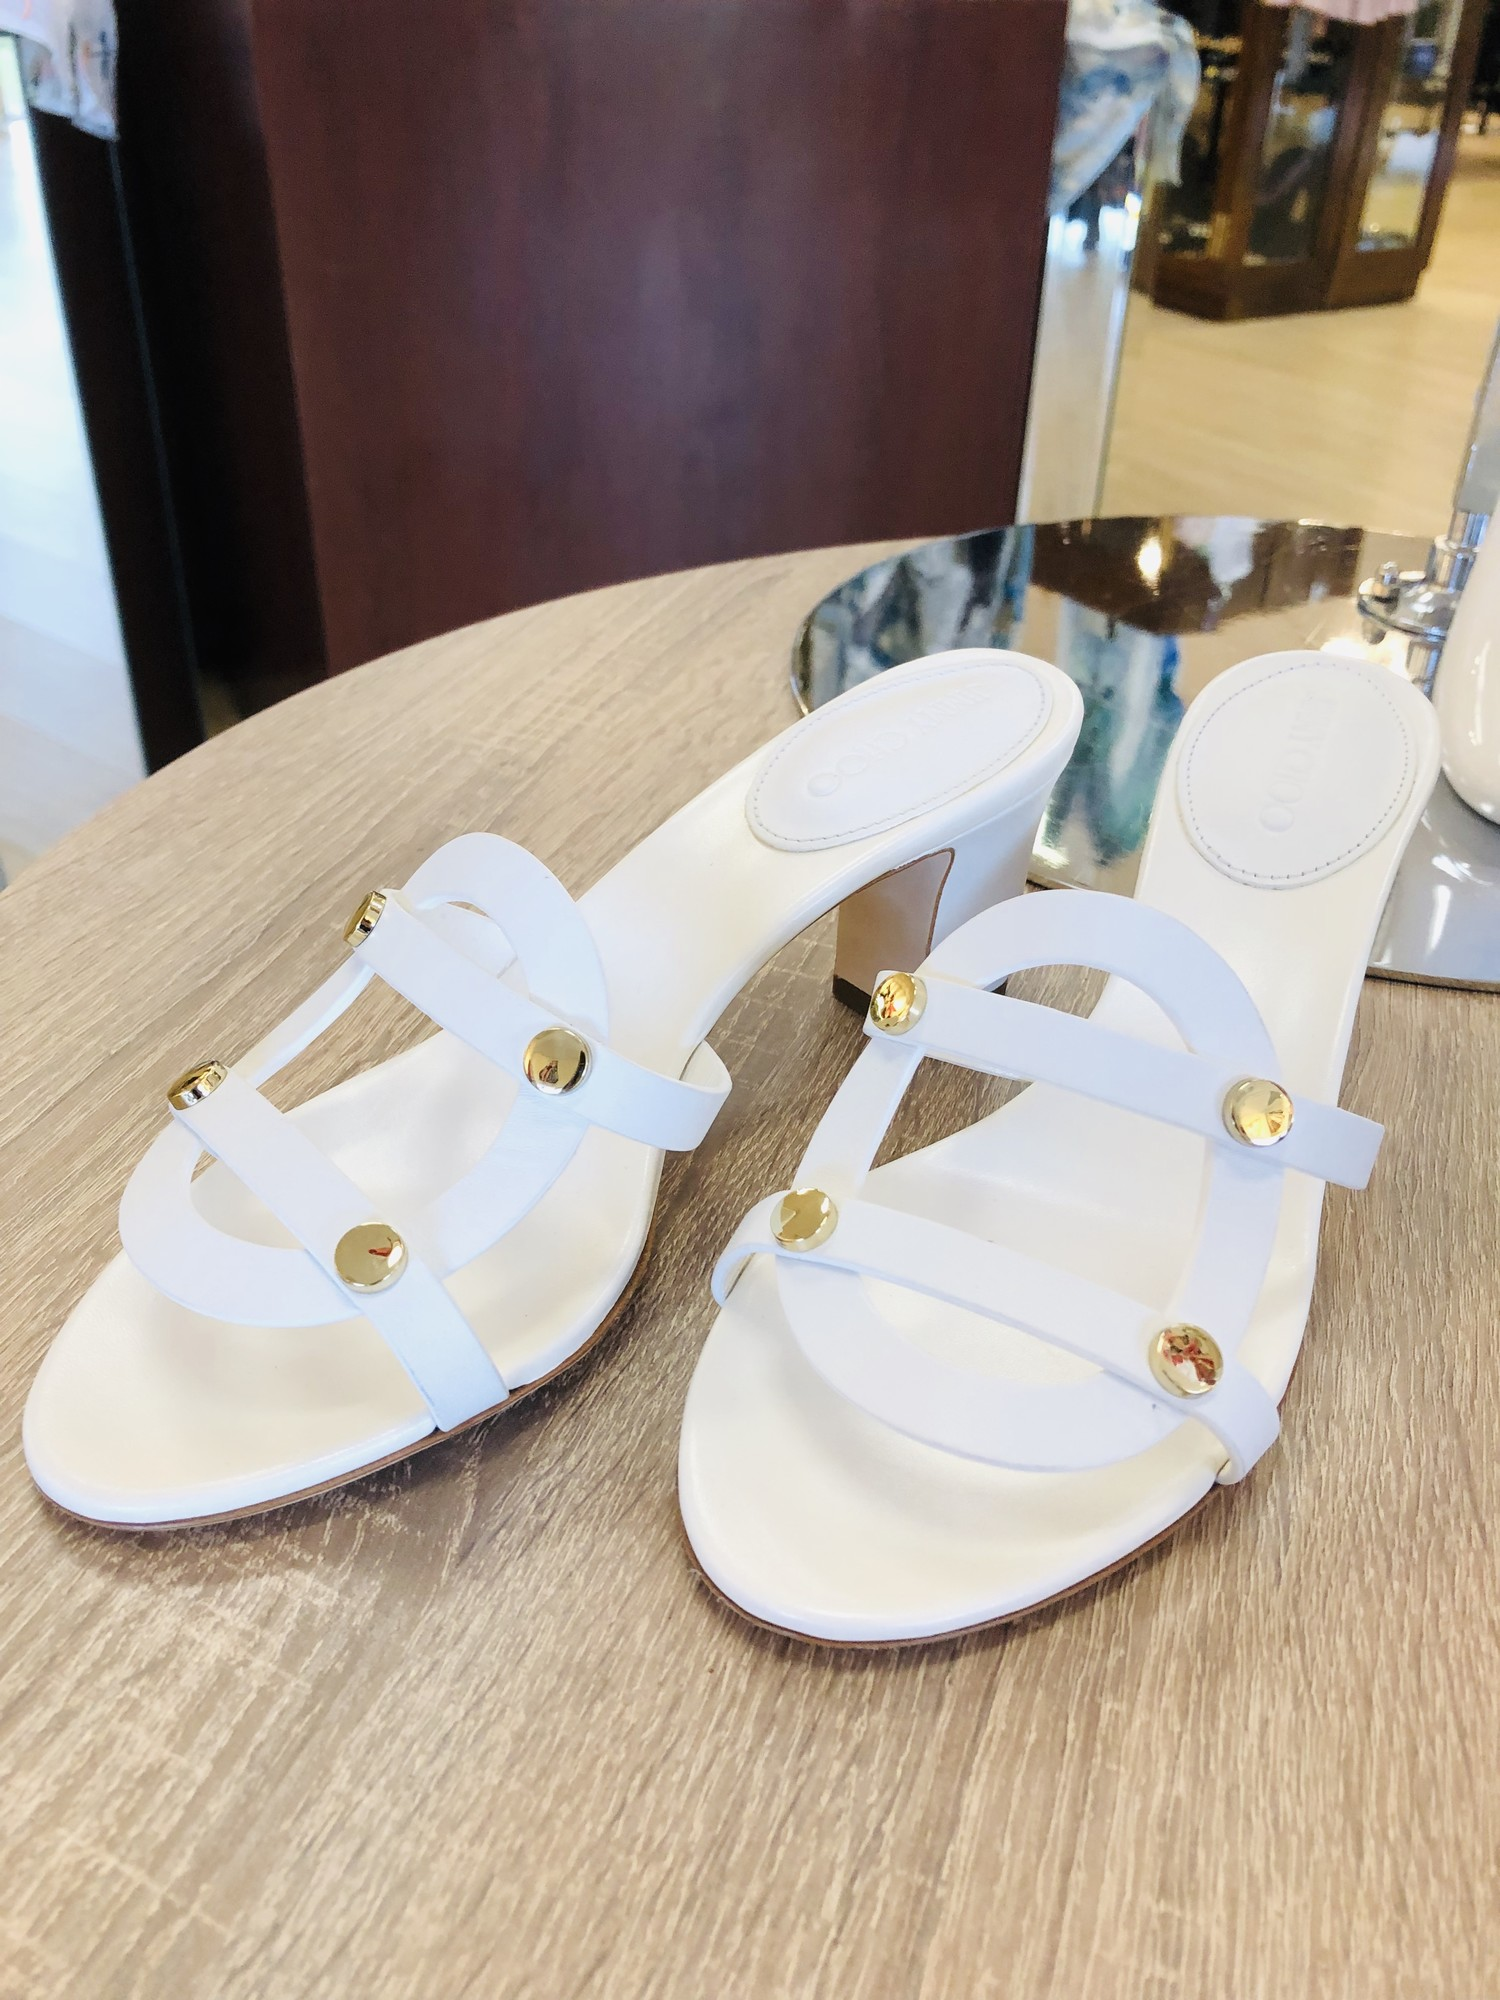 Jimmy Choo white Demaris sandals, gold stud embellishment. Size 38<br /> <br /> Small black mark on side of one shoe, see image